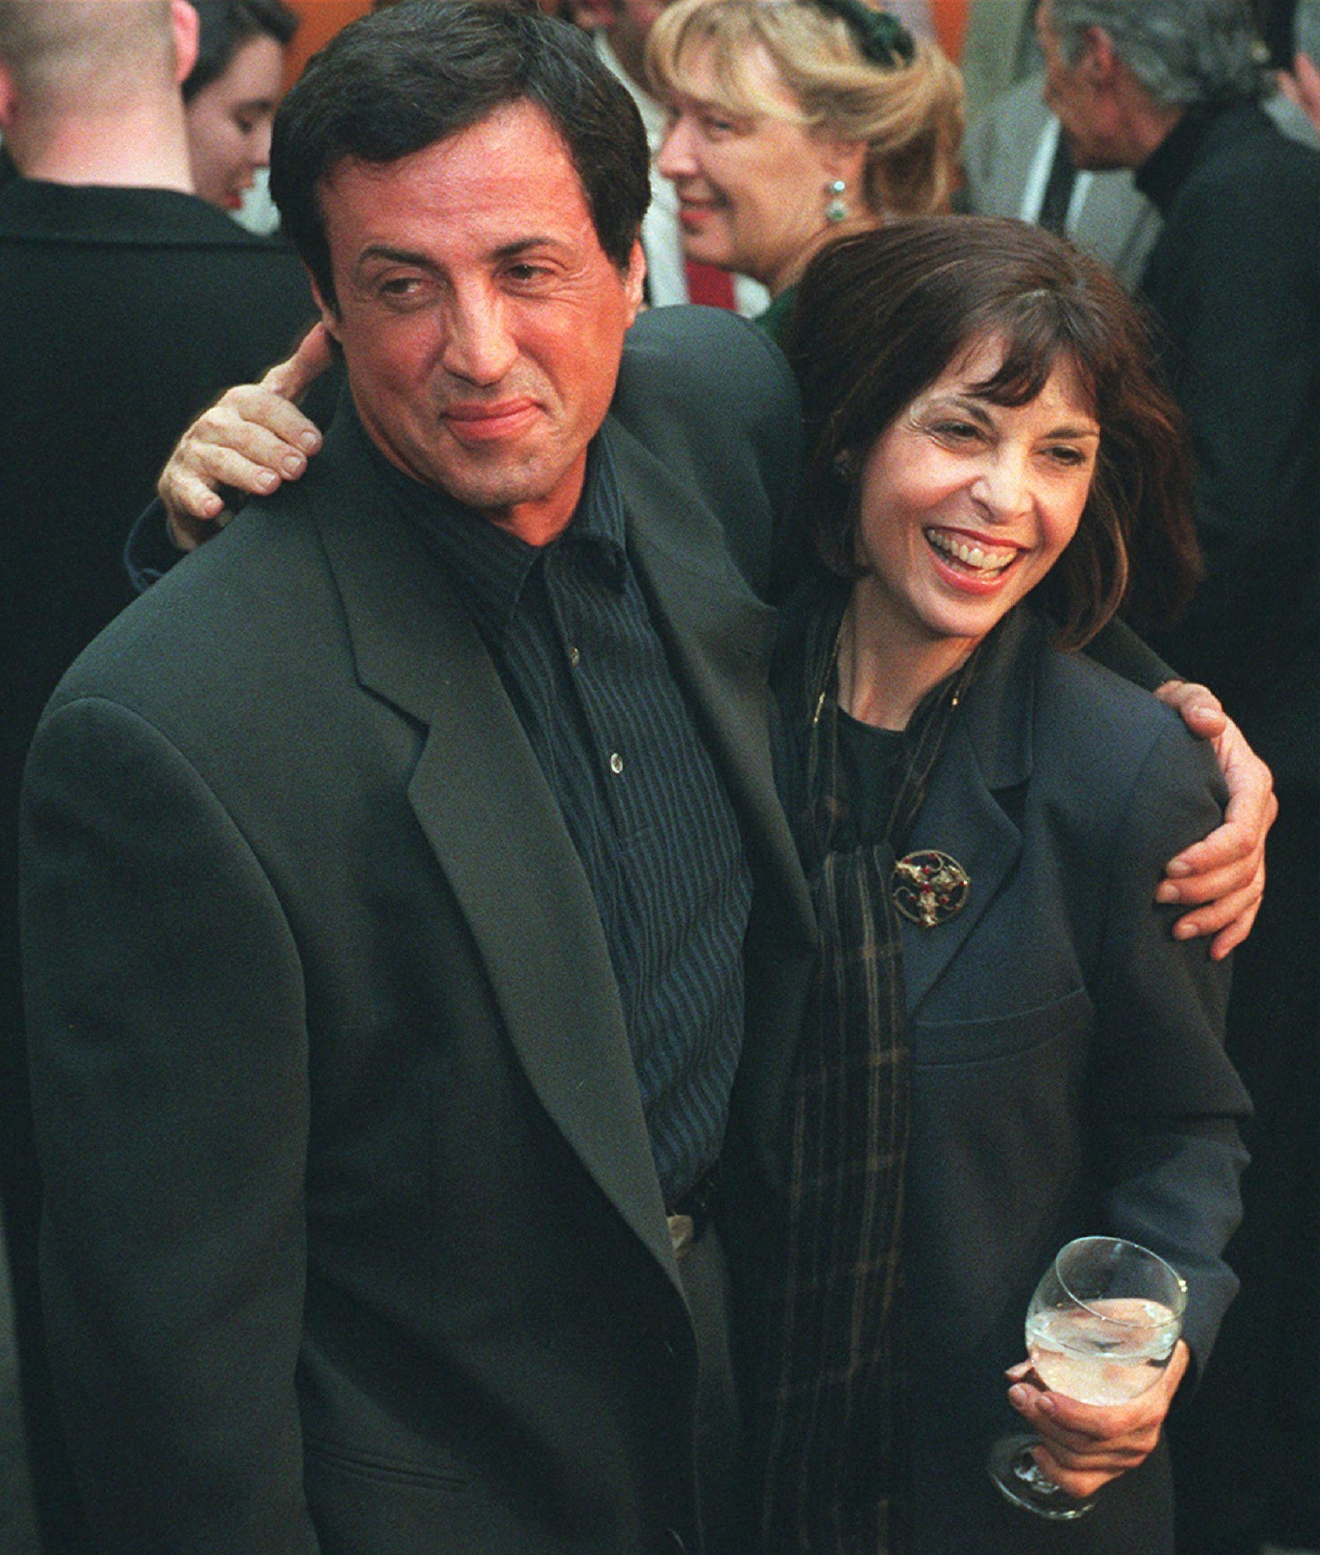 "FILE – In this Nov. 15, 1996, file photo, actor and screenwriter Sylvester Stallone, left, poses with ""Rocky"" co-star Talia Shire before a screening of the film to mark its 20th anniversary at the Academy of Motion Picture Arts and Sciences in Beverly Hills, Calif. Four decades after the Nov. 21, 1976, premiere of ""Rocky,"" the movie's reach is international, and the title character's underdog tale of determination, grit and sleepy-eyed charm still resonates with fans. (AP Photo/Chris Pizzello, File)"